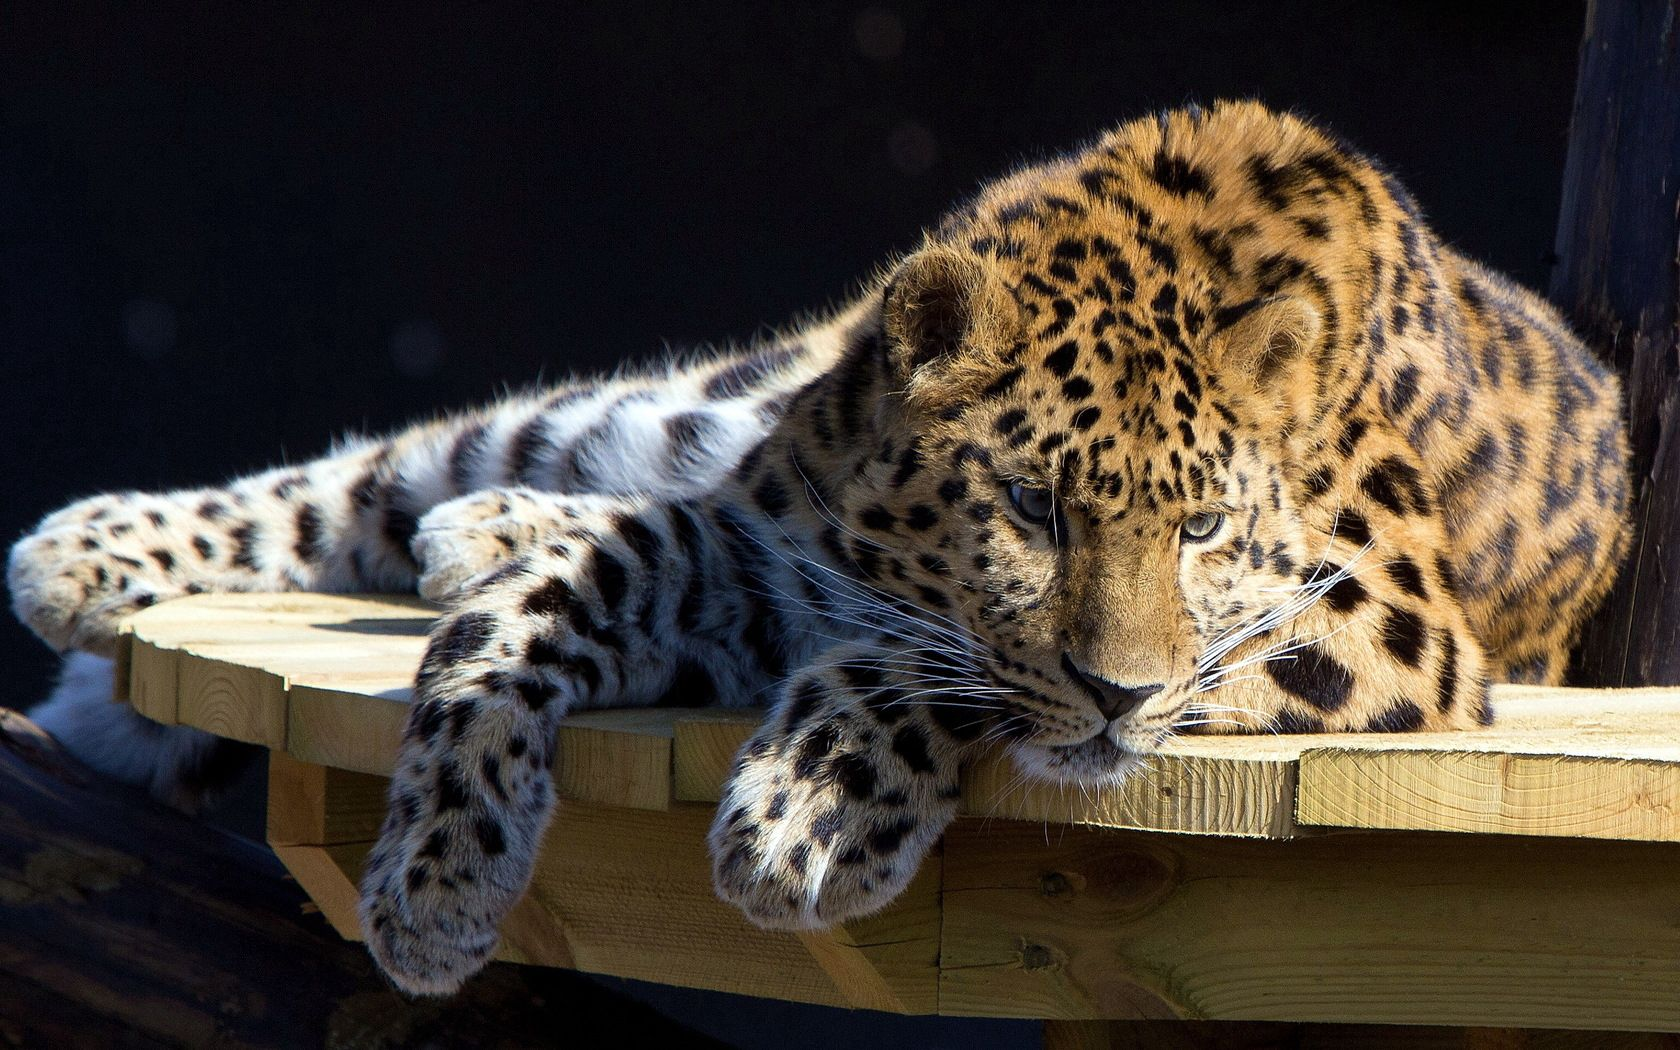 87971 download wallpaper Animals, Leopard, To Lie Down, Lie, Dog, Muzzle, Hunting, Hunt, Attention, Table screensavers and pictures for free